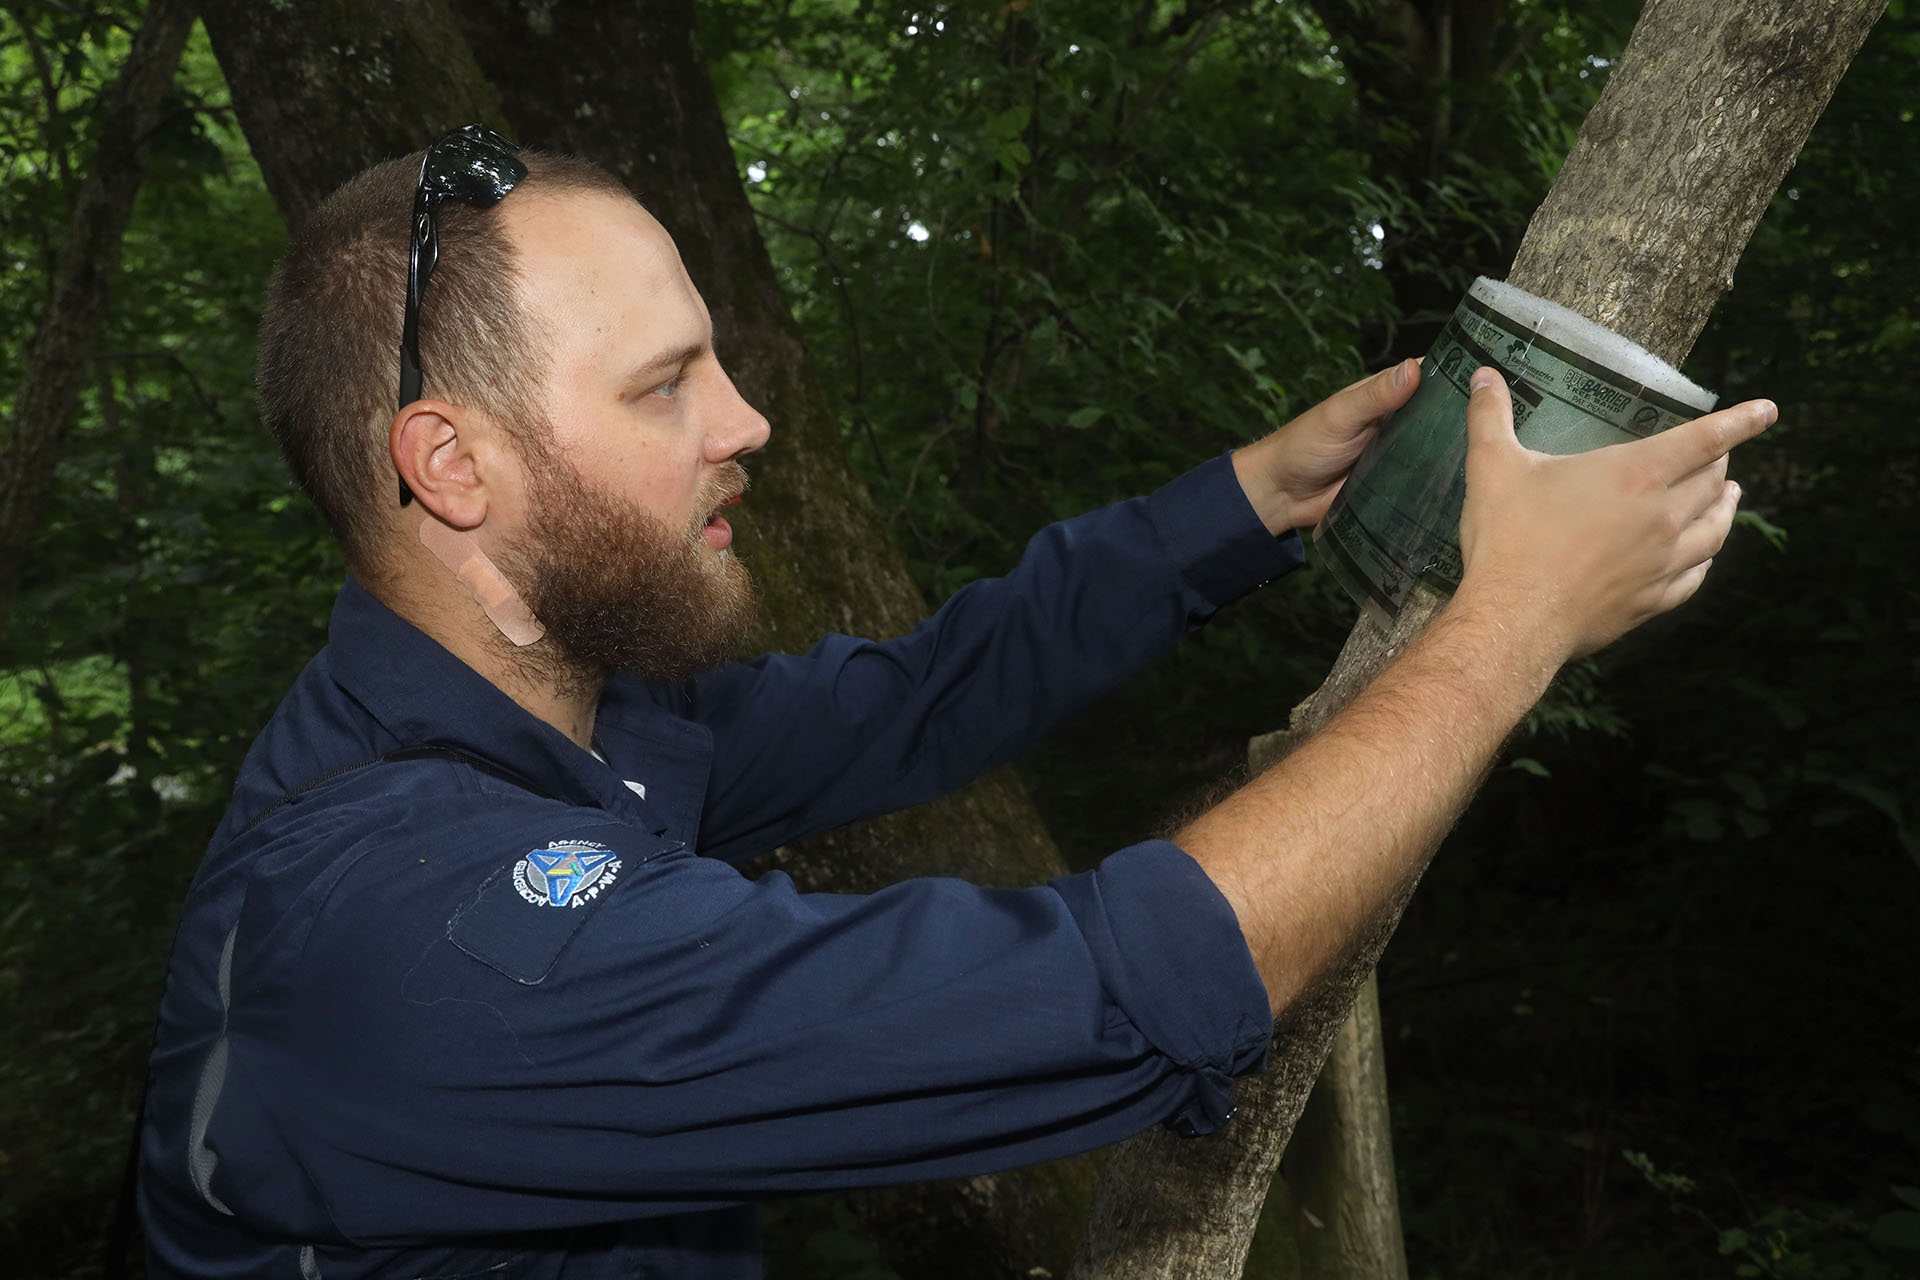 Spotted Lanternfly population being monitored